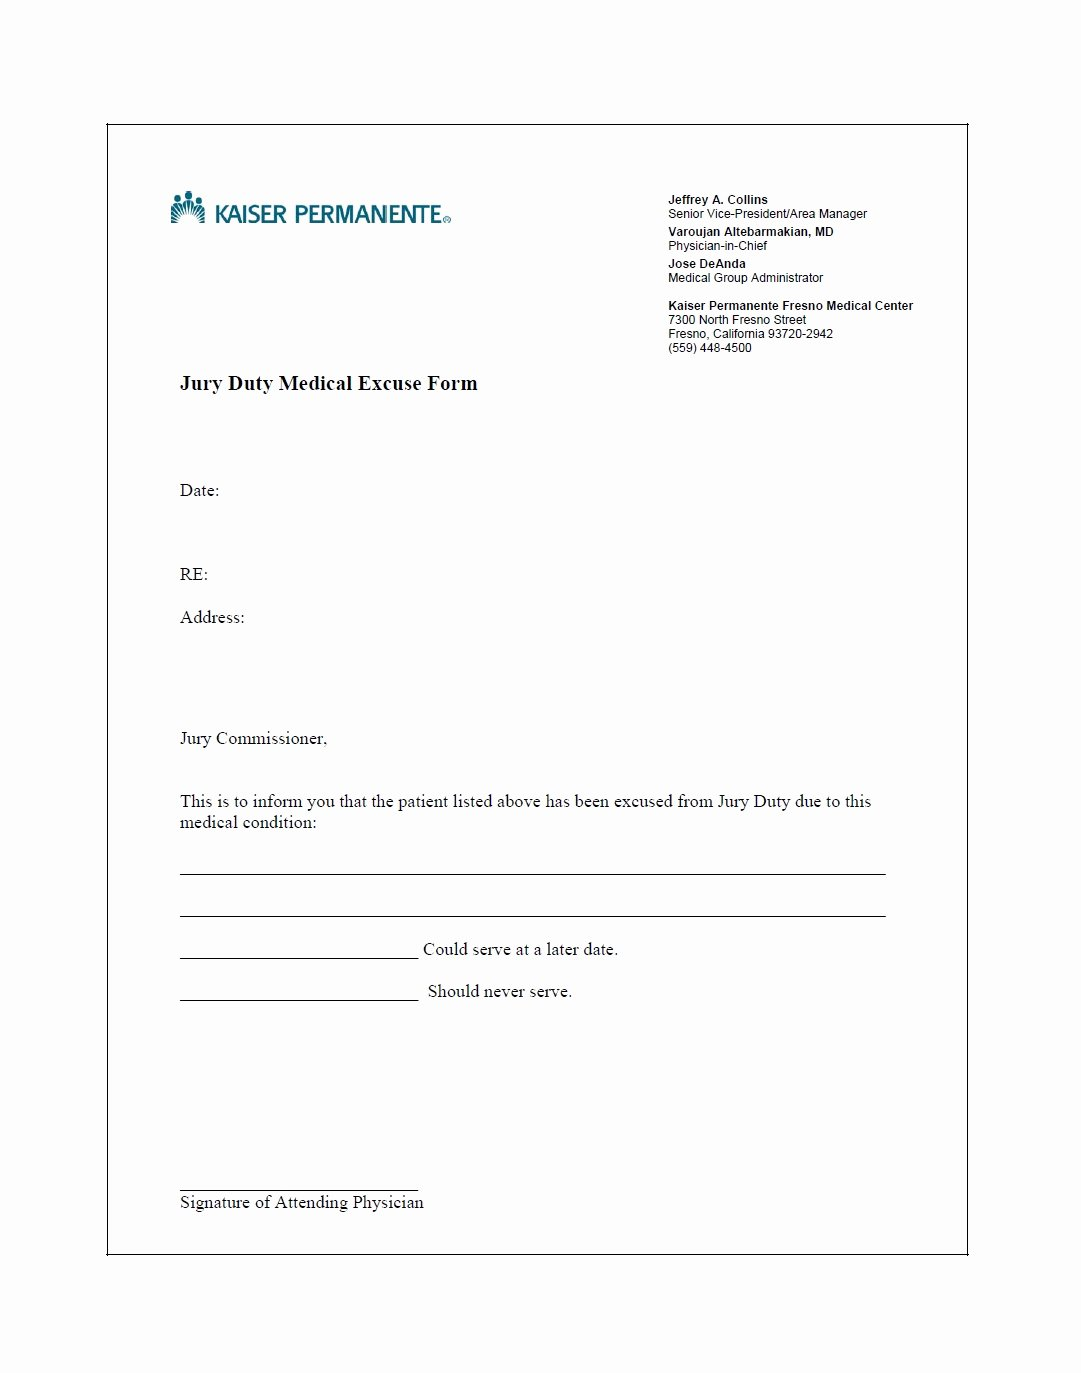 Sample Jury Excuse Letter Awesome 33 Best Jury Duty Excuse Letters [ Tips] Template Lab